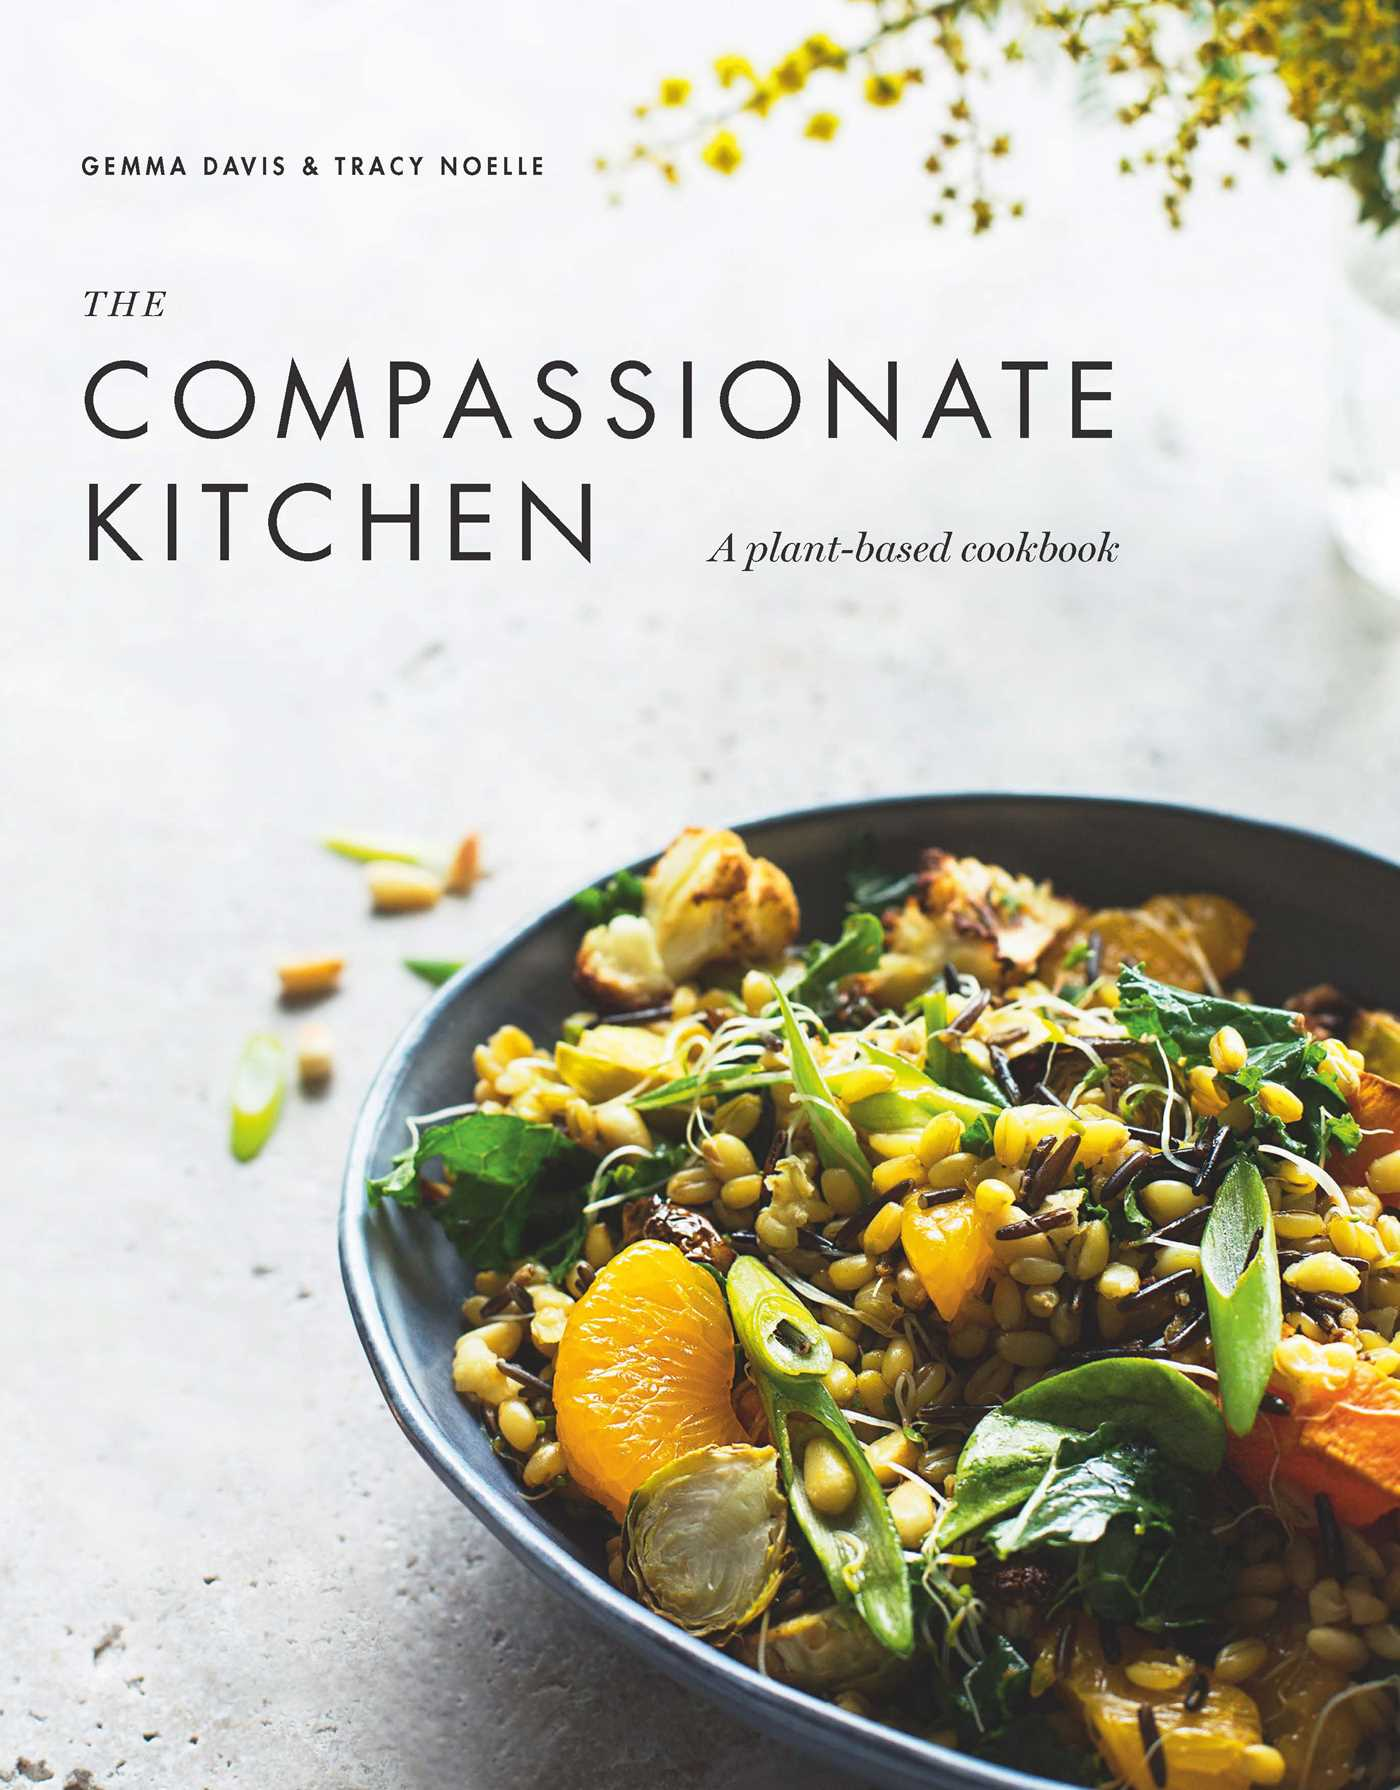 The compassionate kitchen 9781925791297 hr